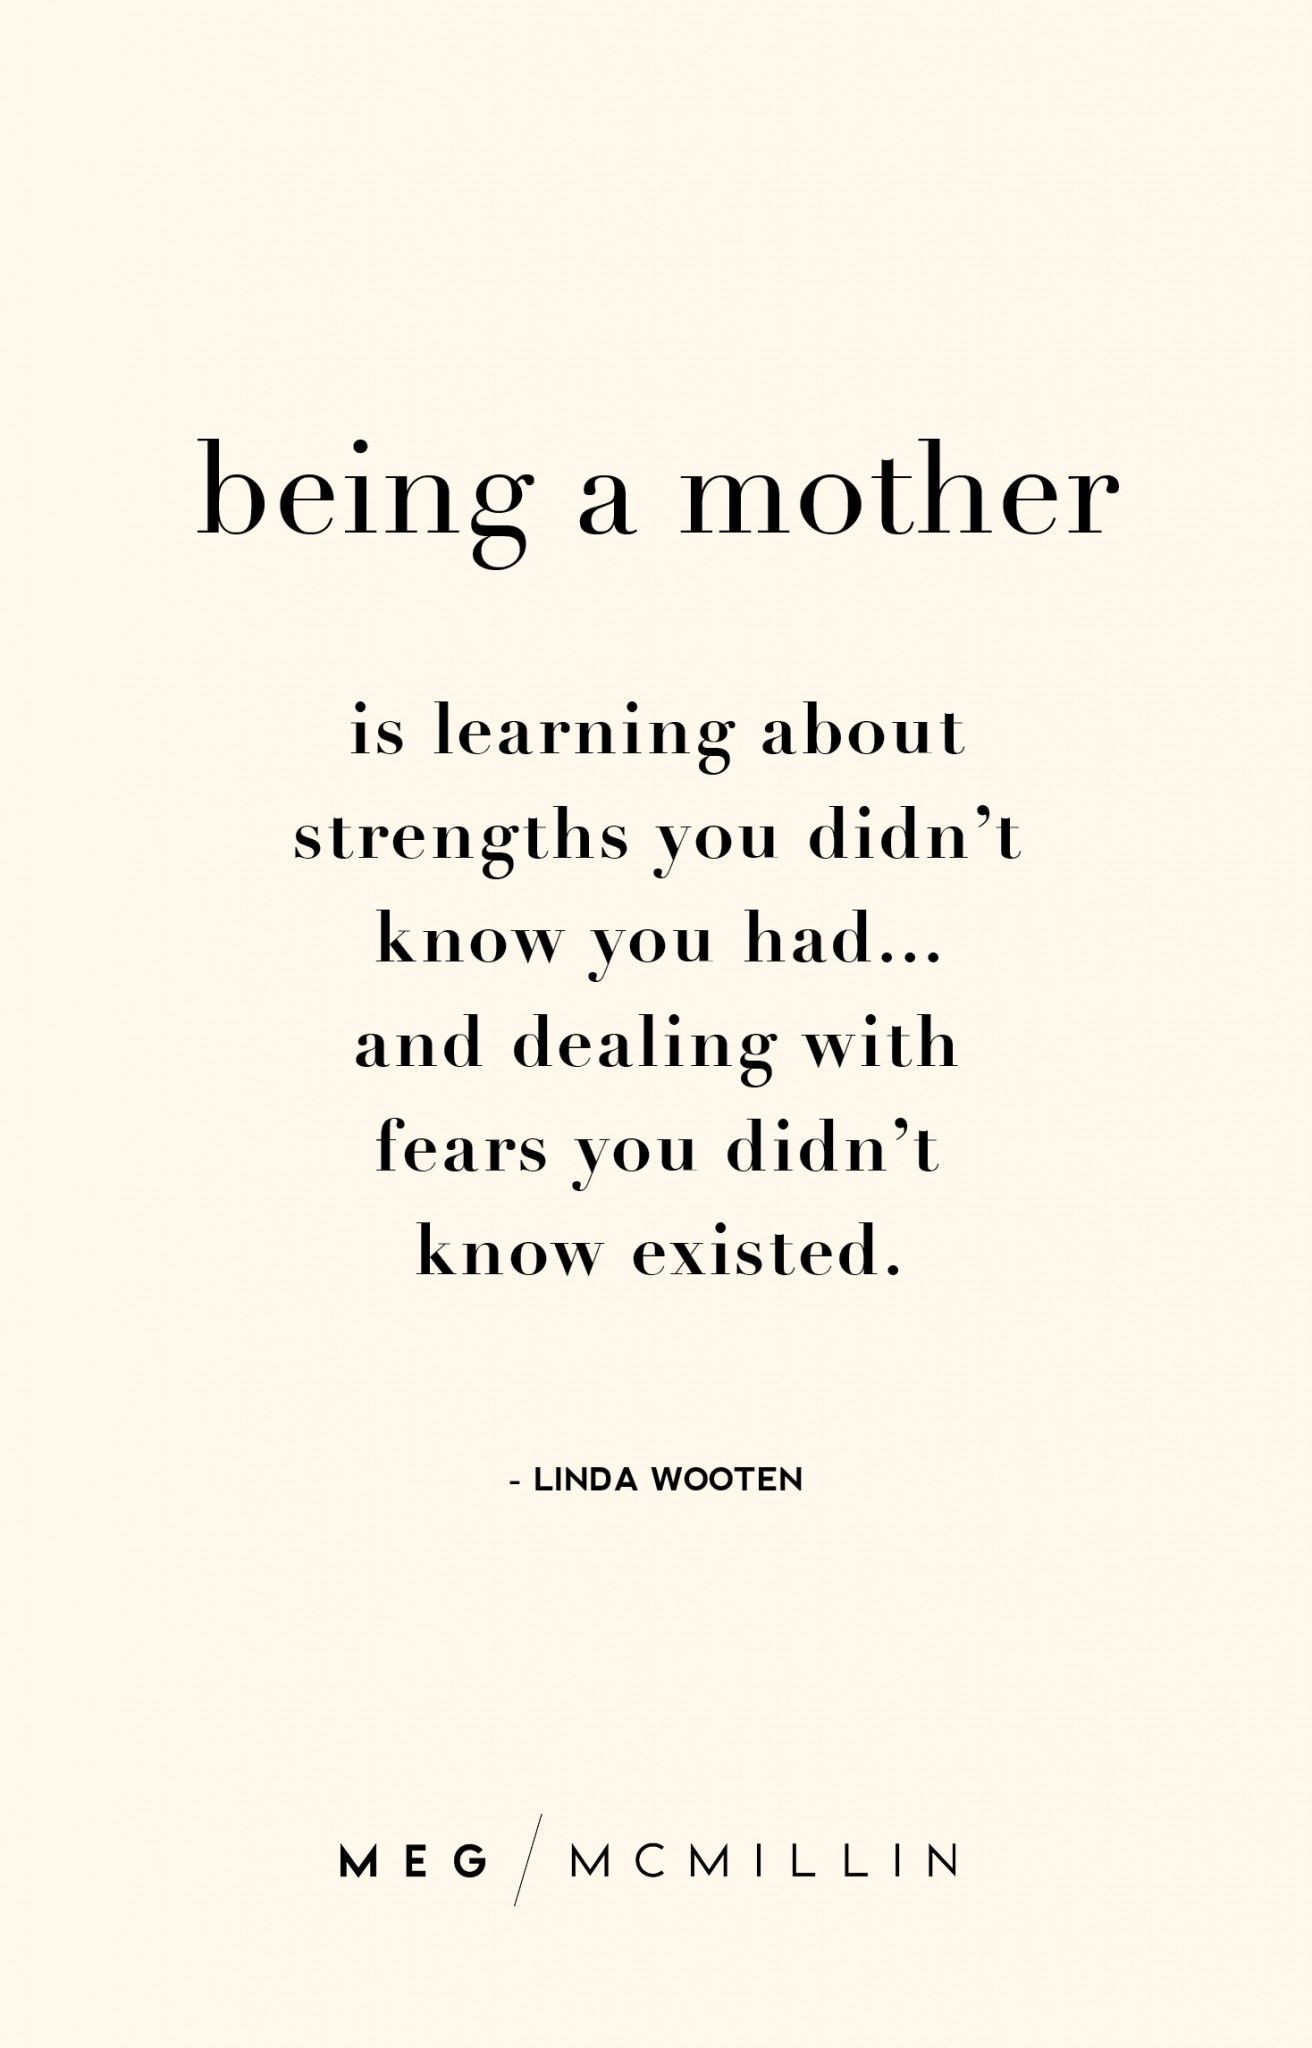 Child Development Quotes Inspirational New Mom Quotes Inspirational New Mom Quotes Encouraging Newborn Ha In 2020 New Mom Quotes Mom Quotes Funny Quotes For Kids